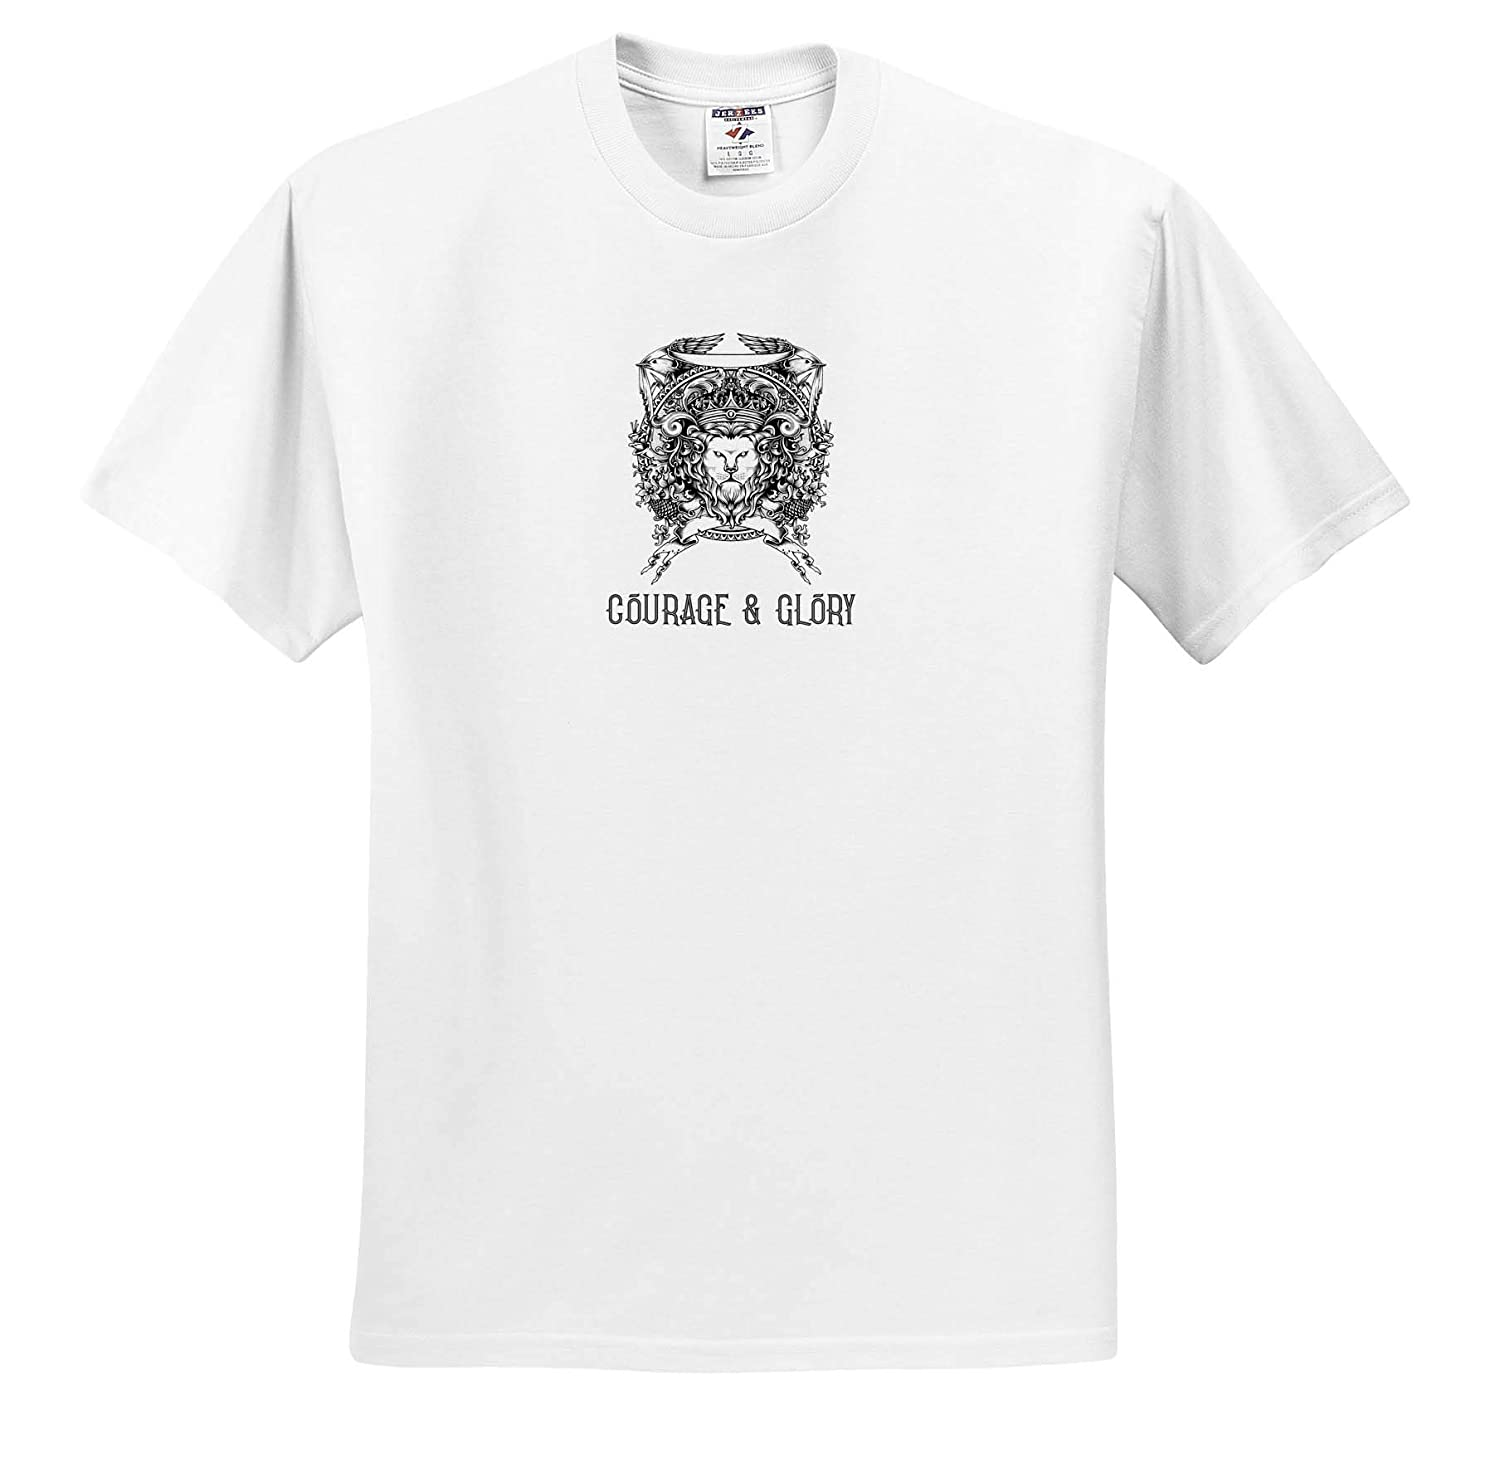 Animals A Text Courage and Glory Image of a Medieval Emblem with a Lion face 3dRose Alexis Design T-Shirts